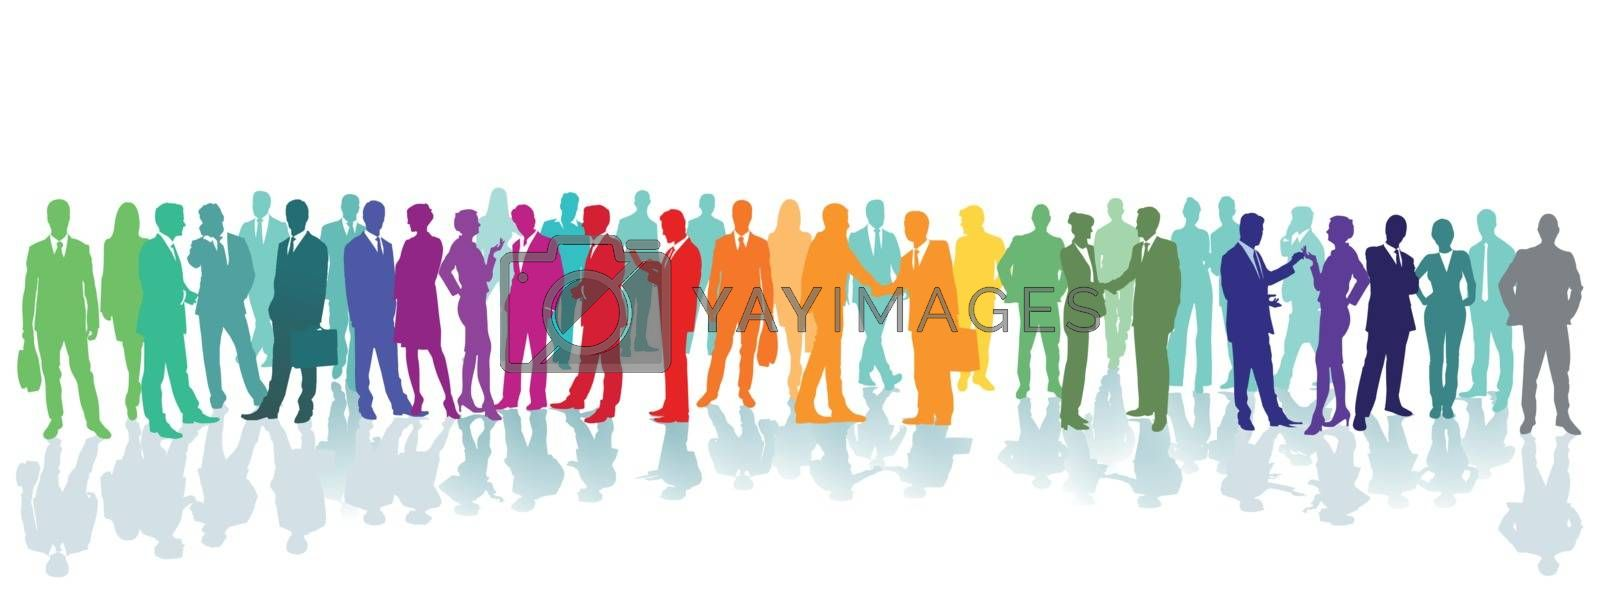 Royalty free image of Colorful crowd on a place by scusi